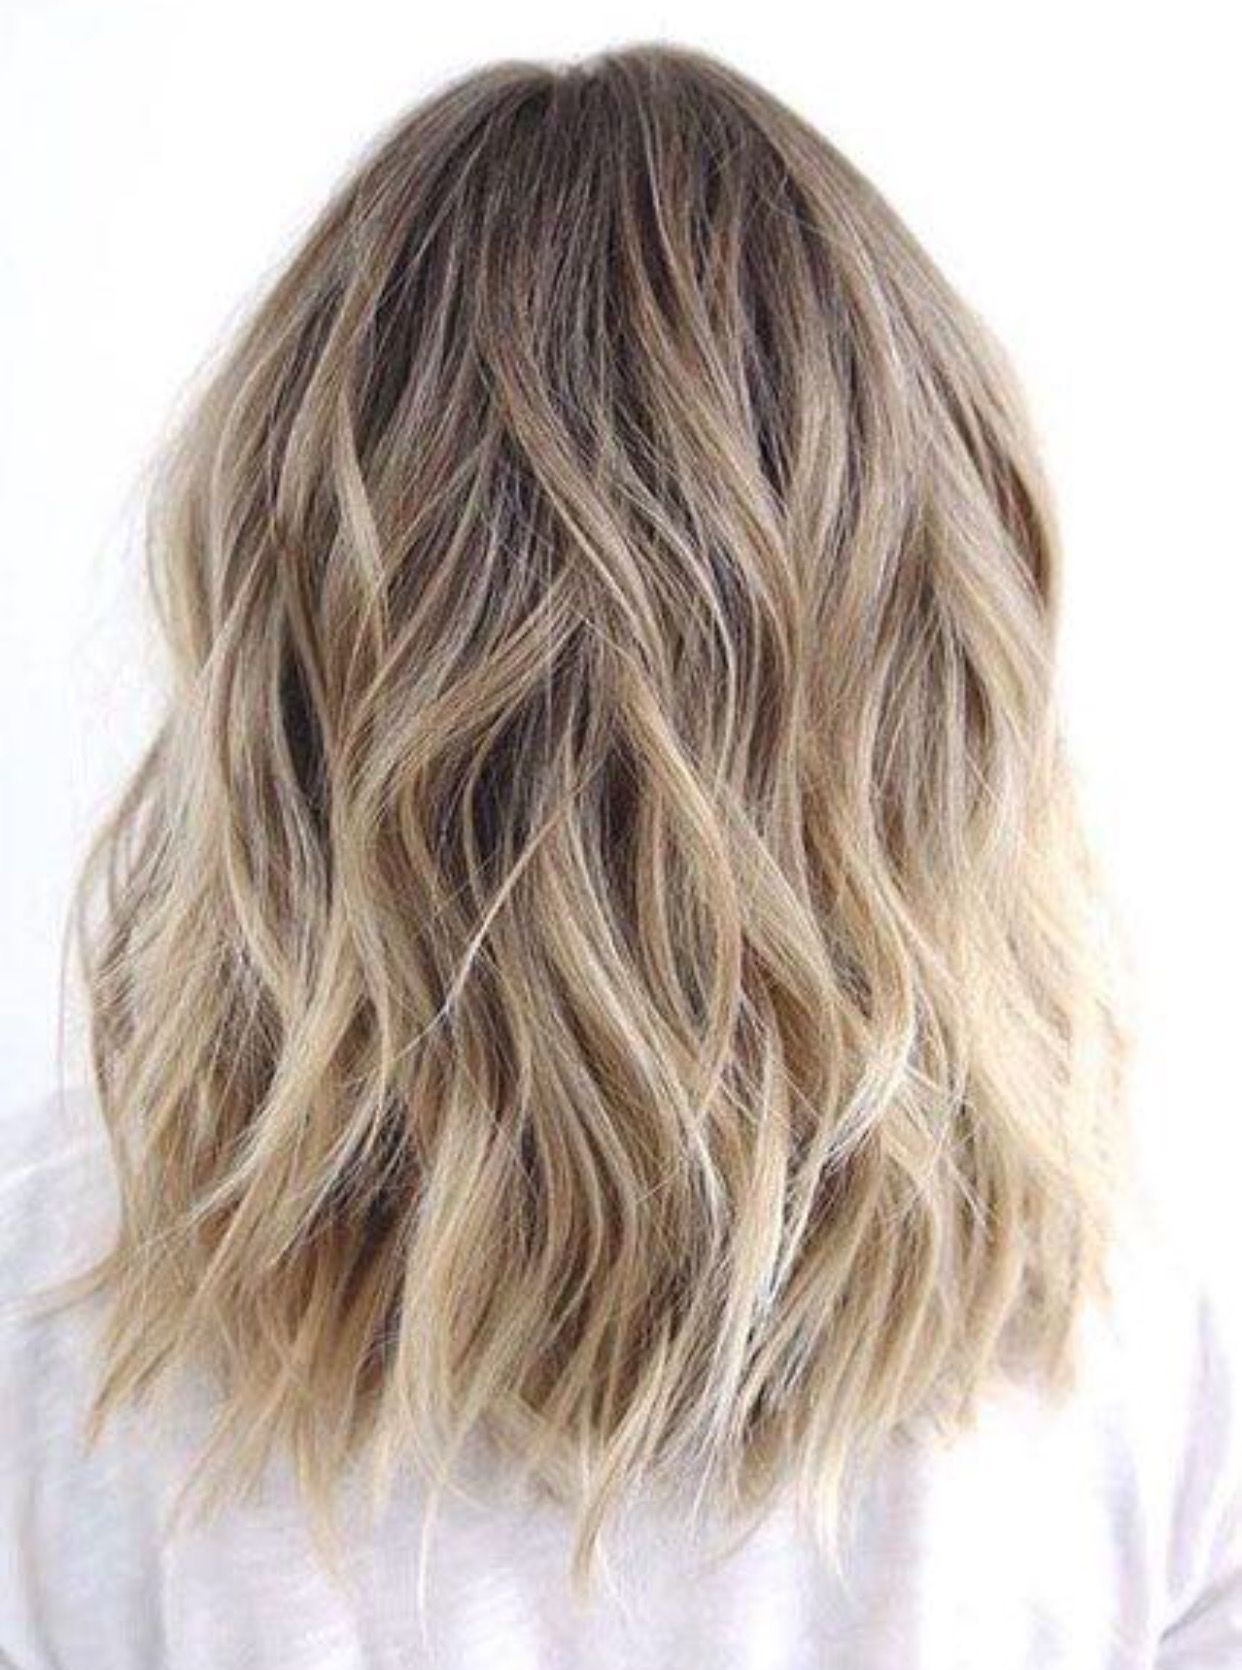 Pin by marissa speck on hairmakeup in pinterest hair hair